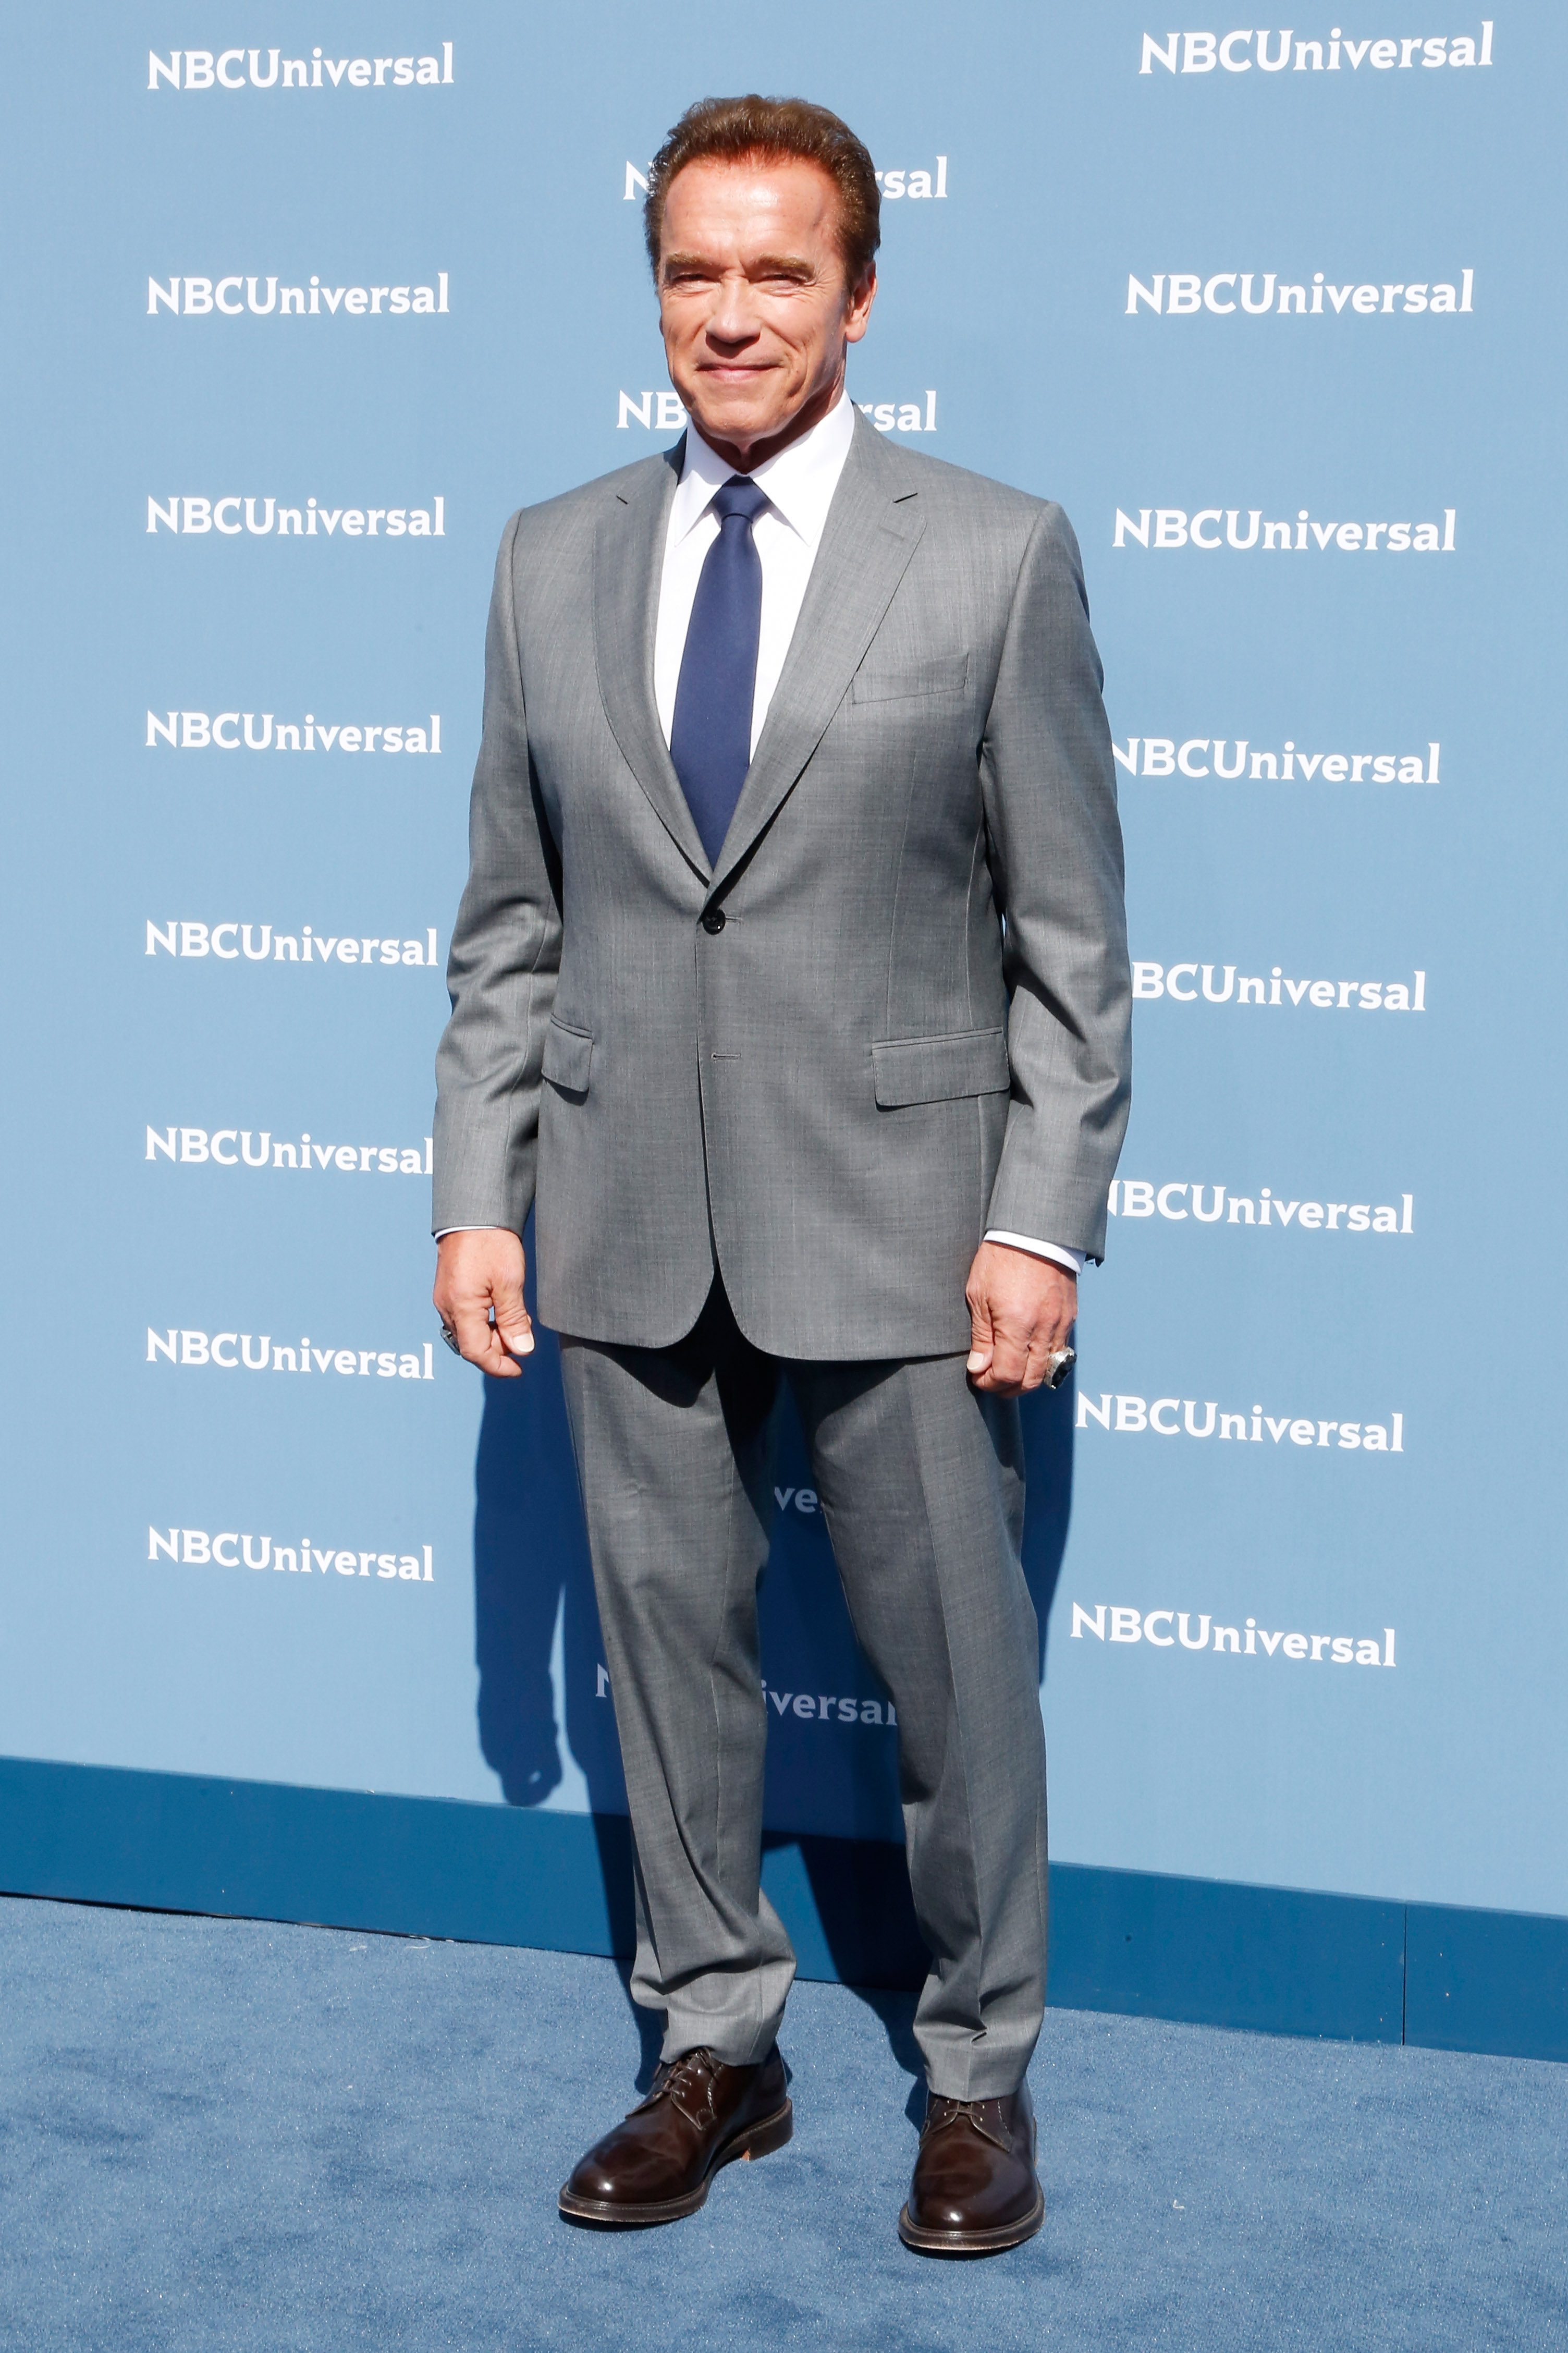 NBCUniversal 2016 Upfront